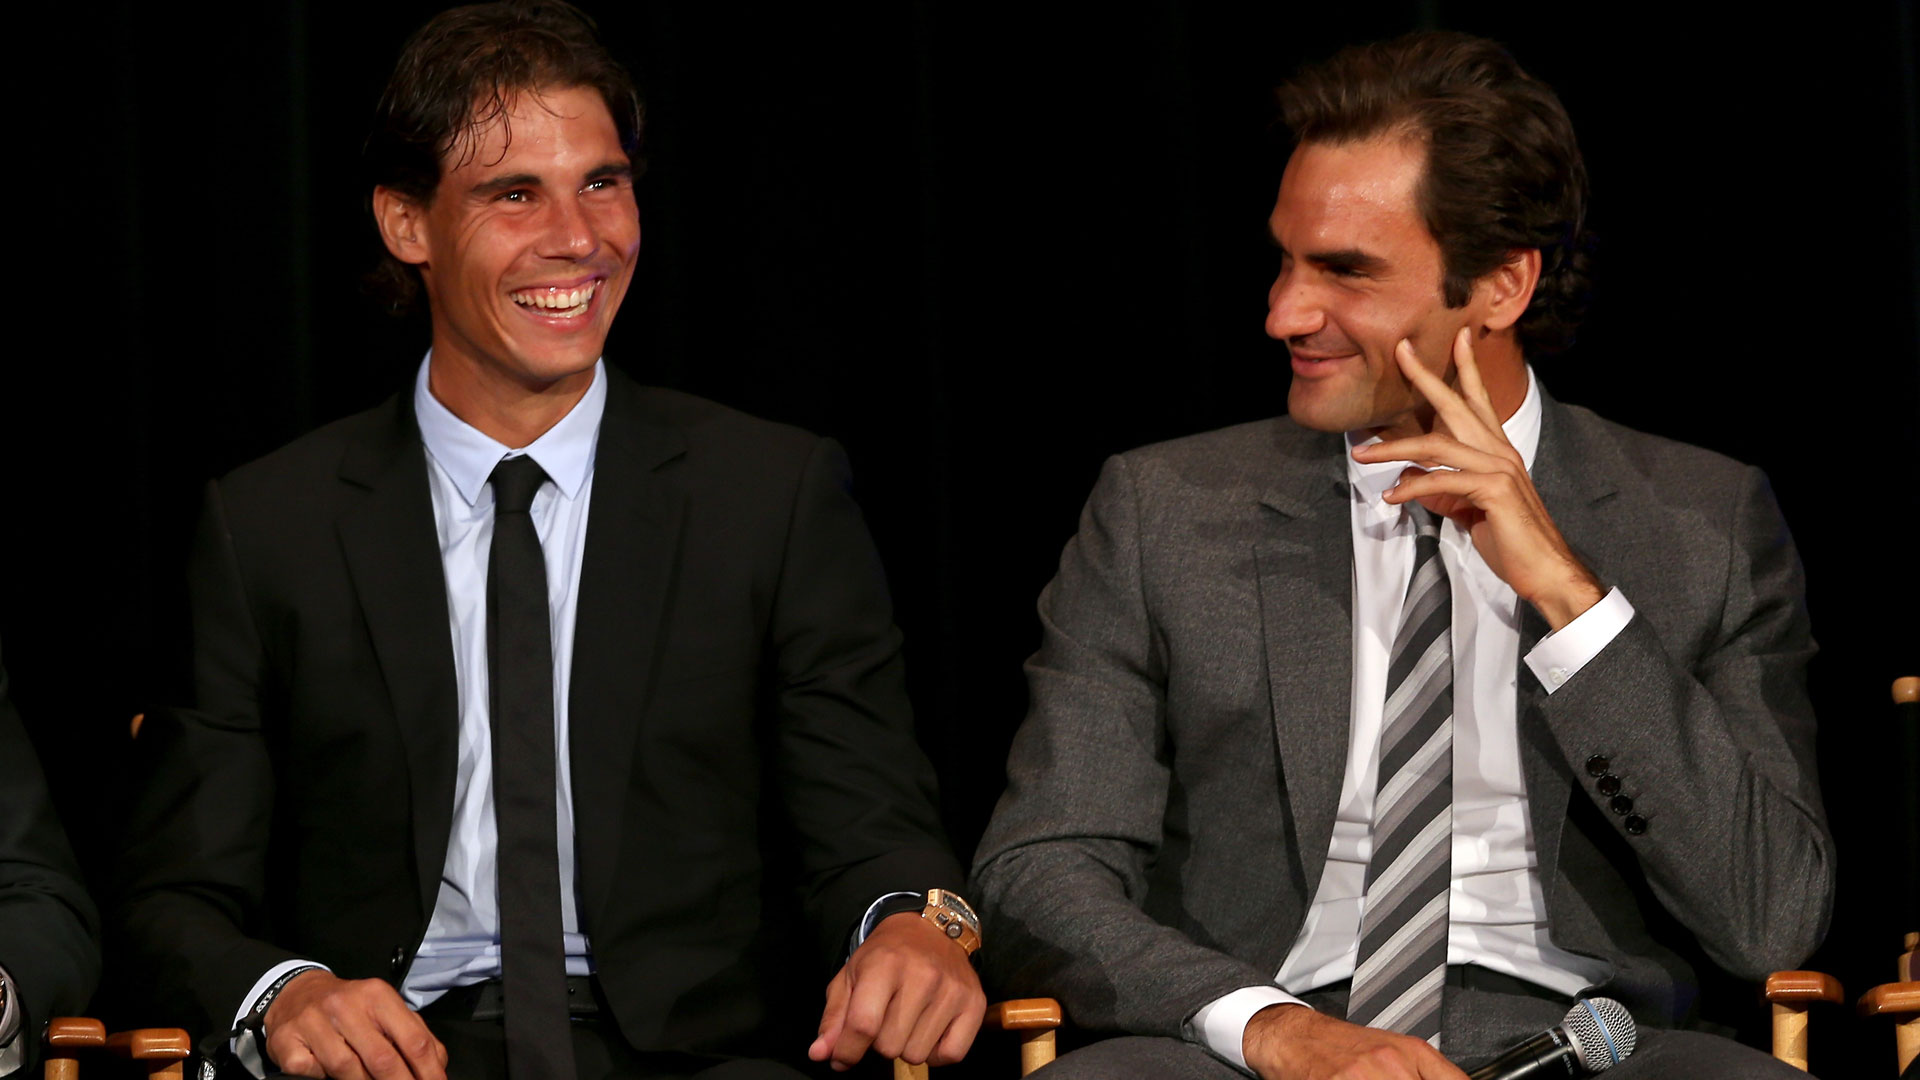 Federer Nadal S 10 Best Quotes About Each Other Atp Tour Tennis